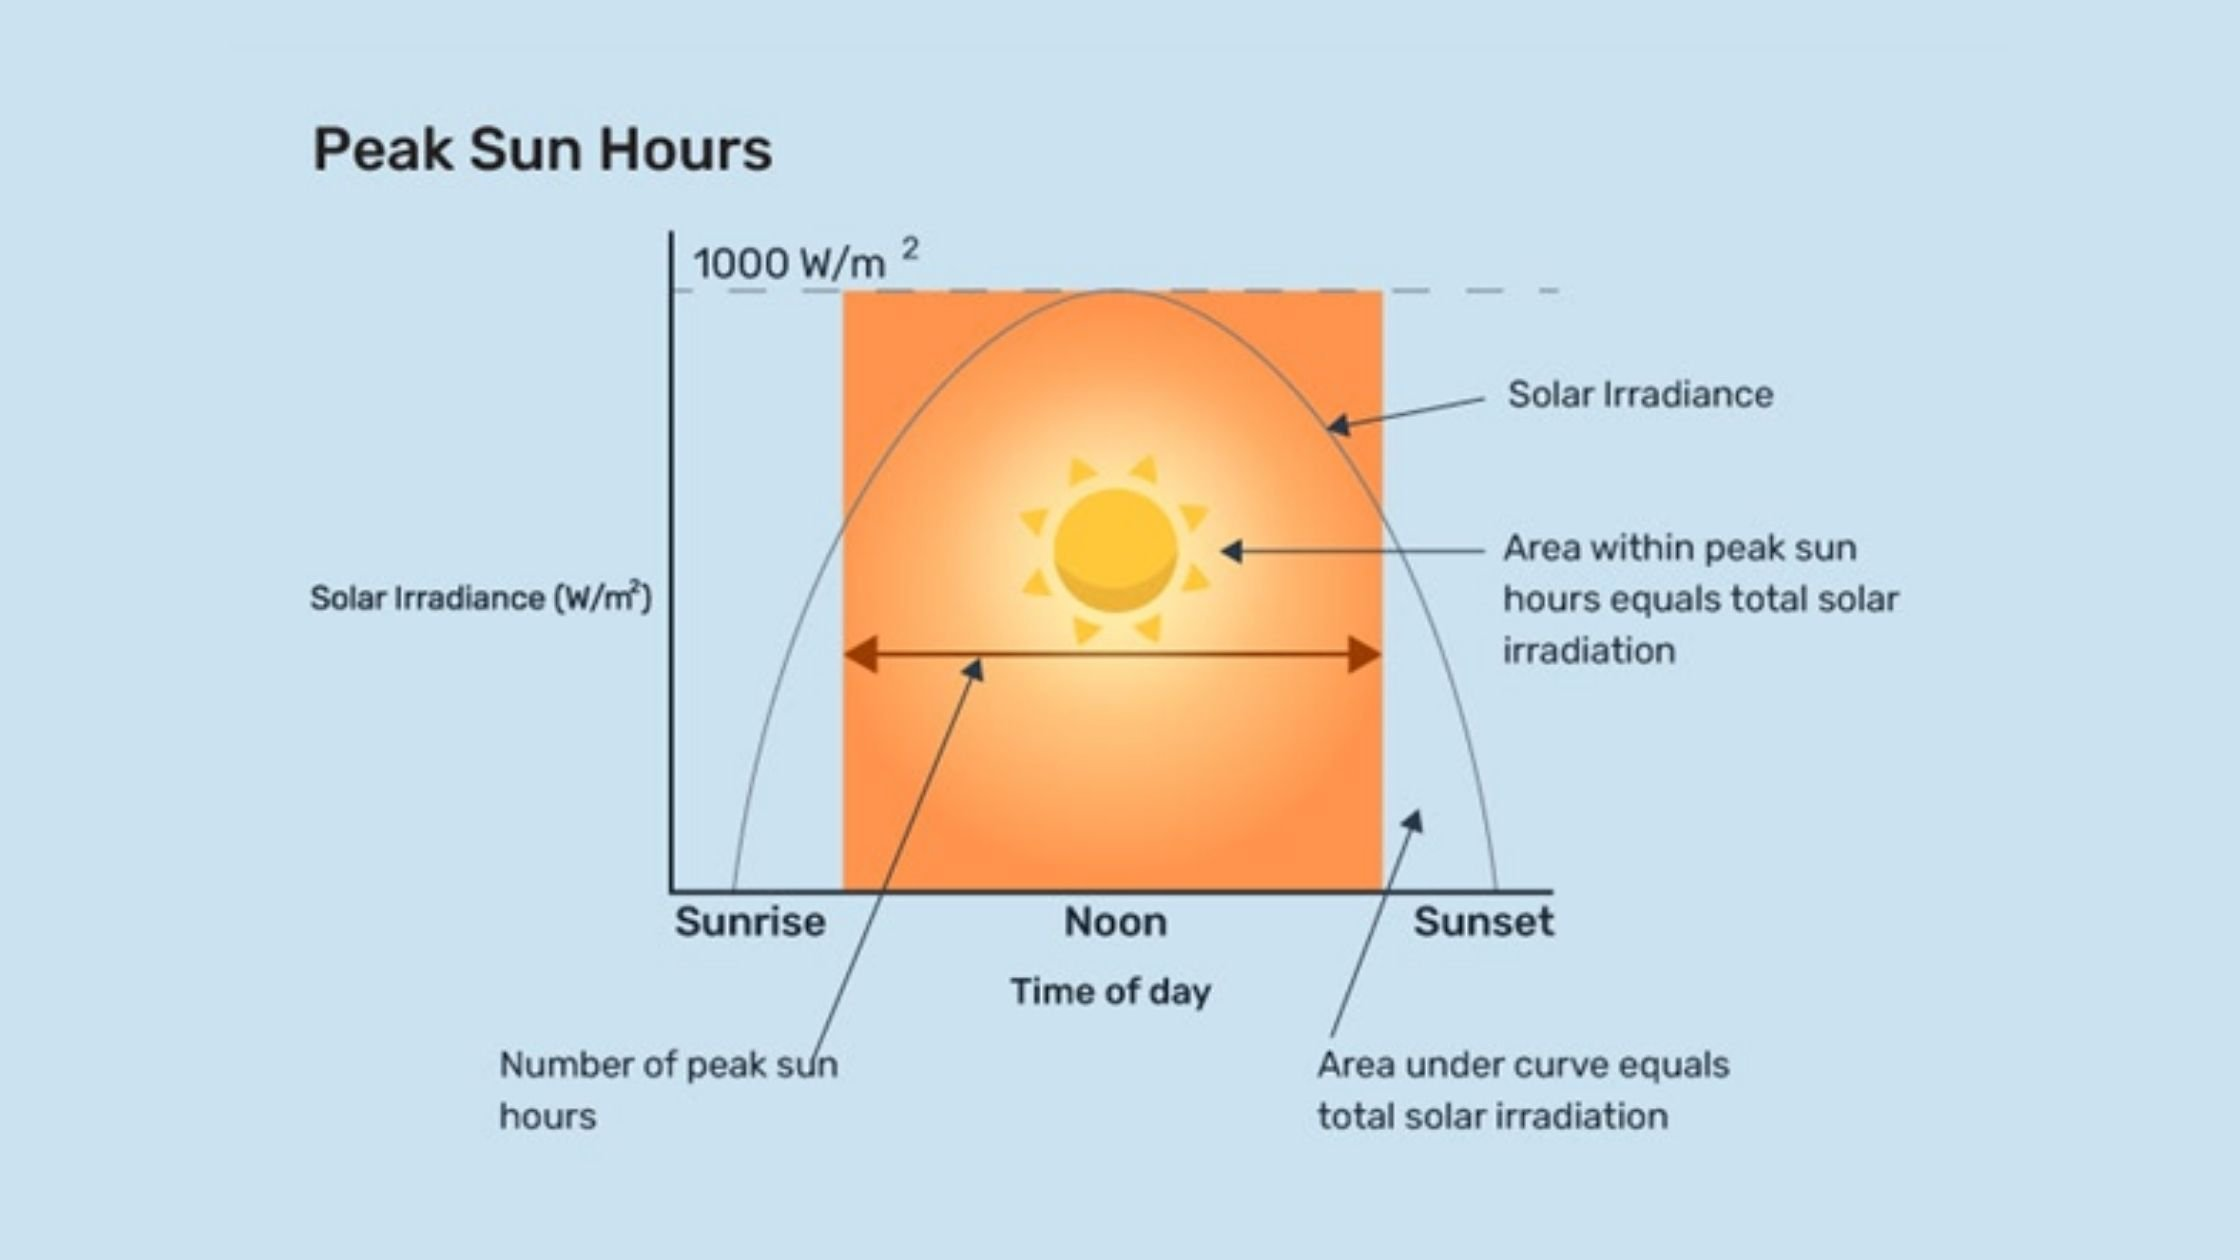 What are peak sun hours